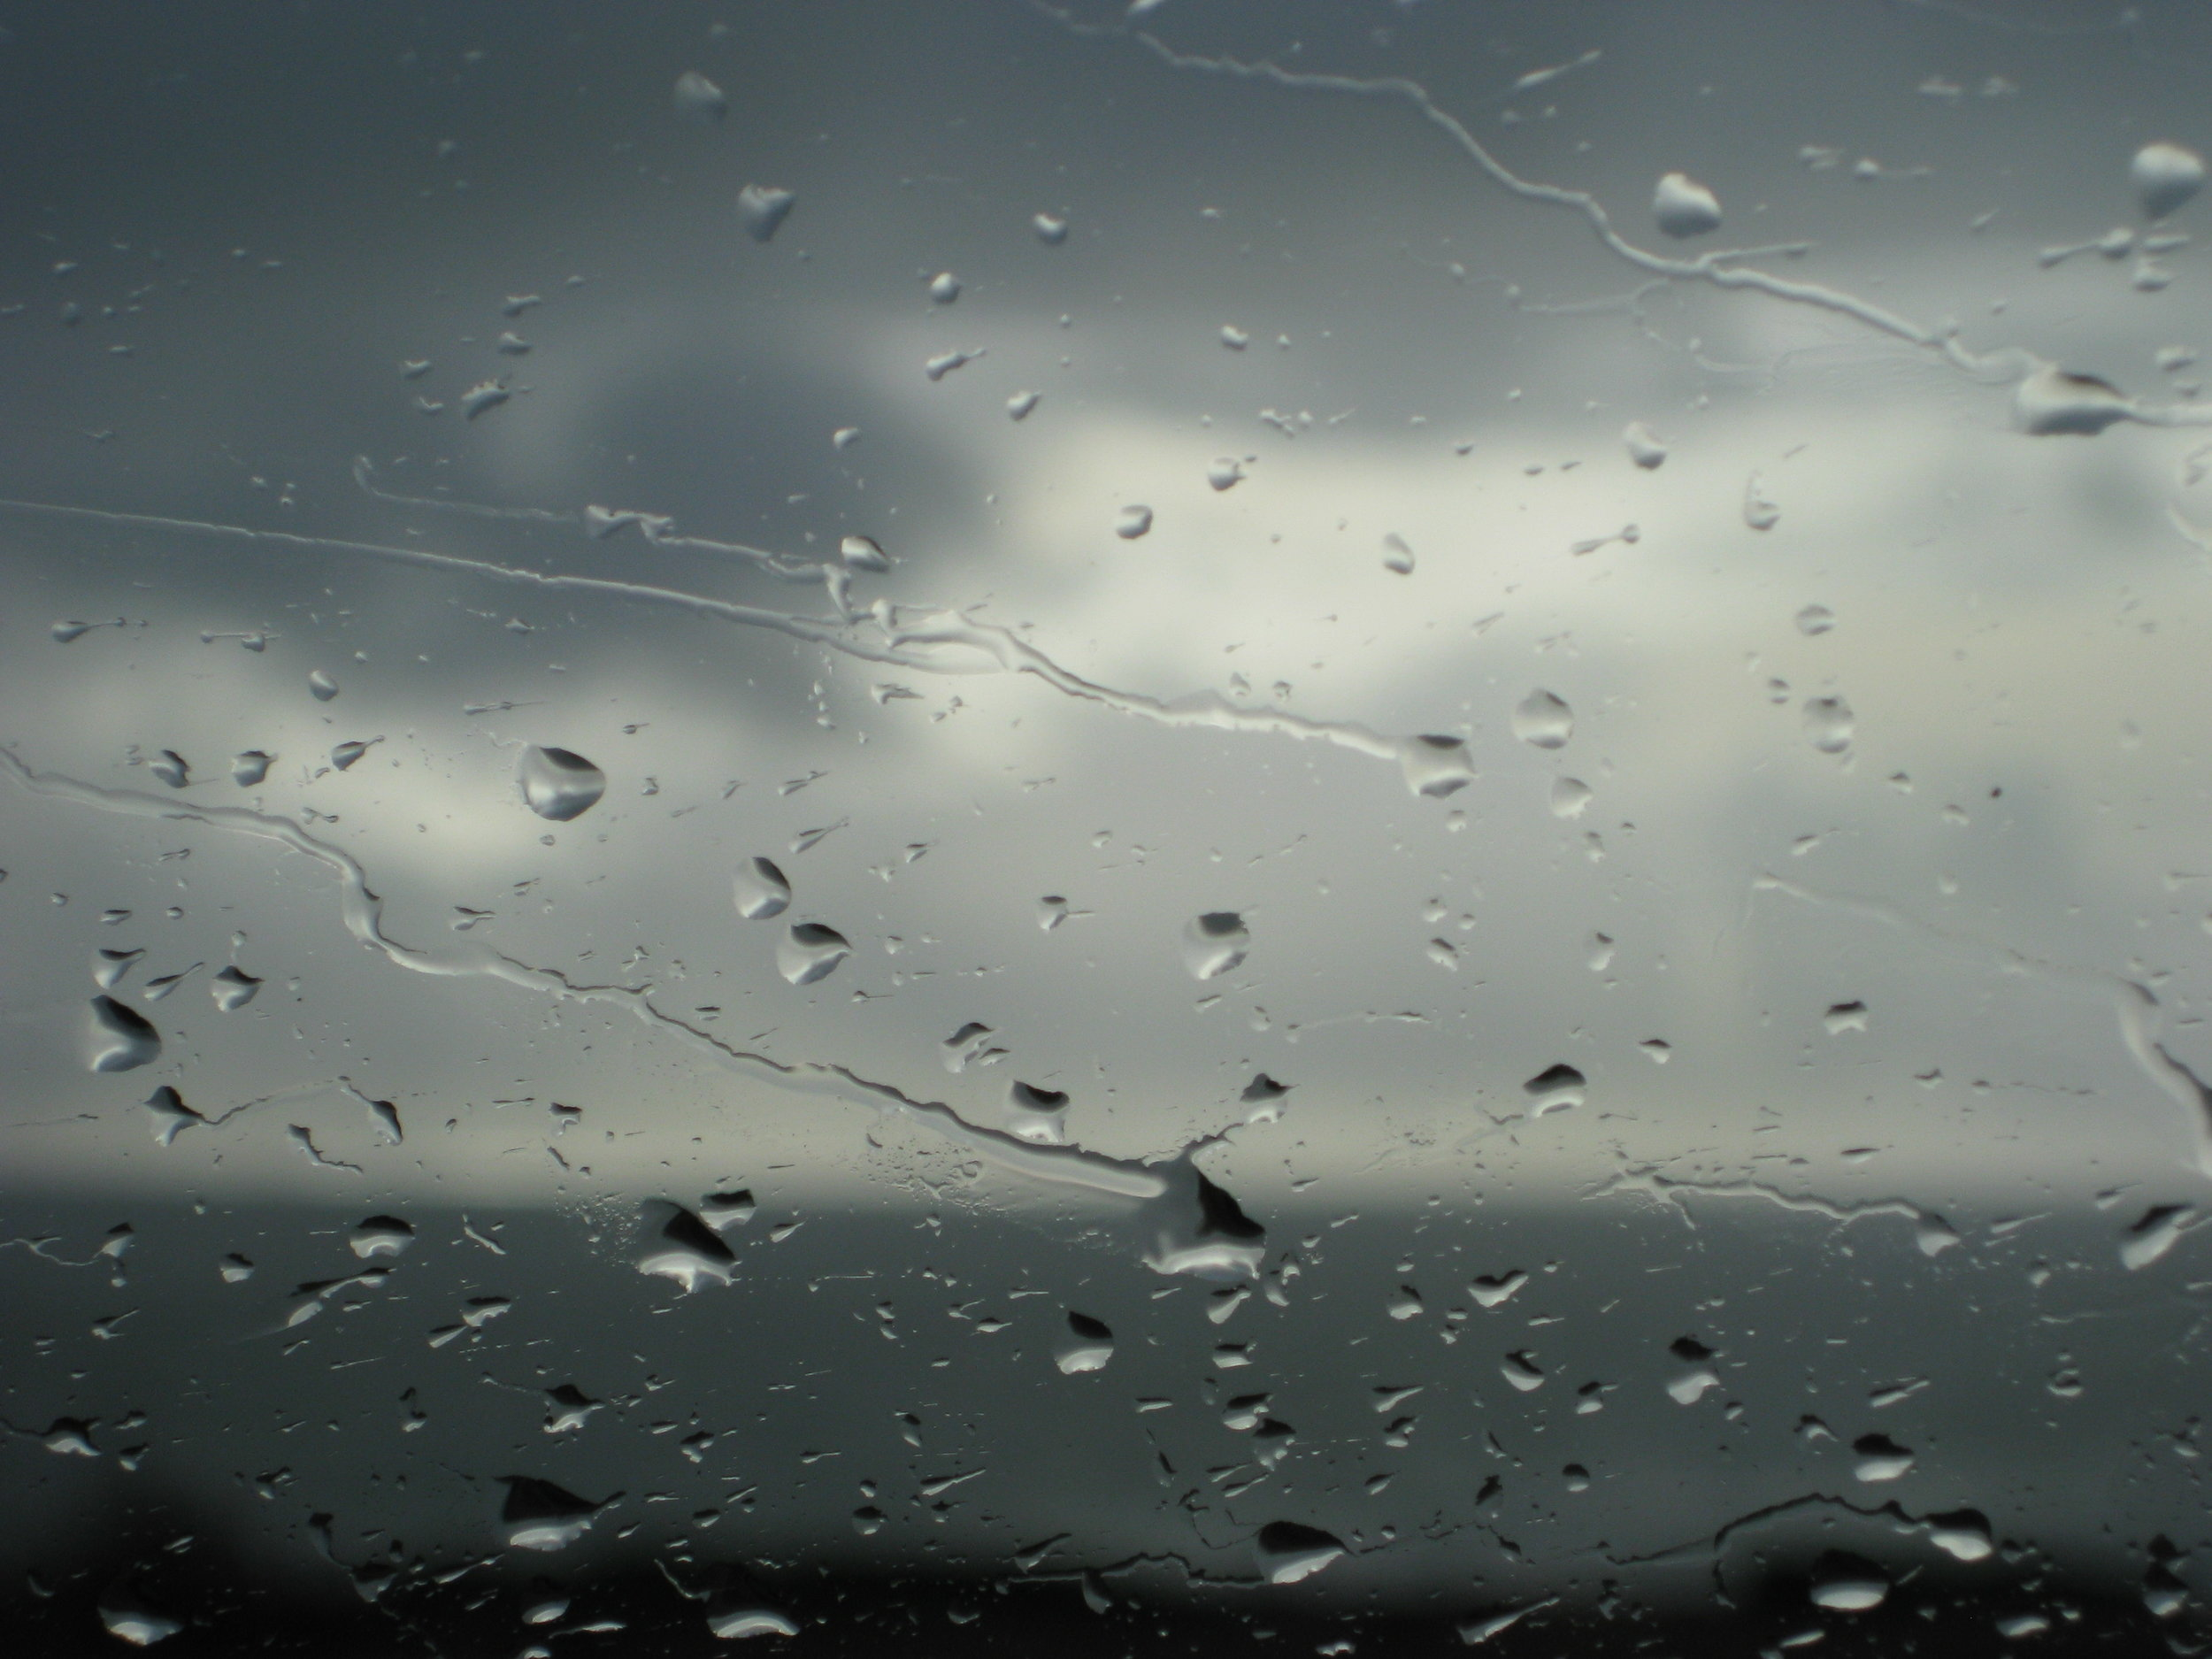 Rain/Windshield